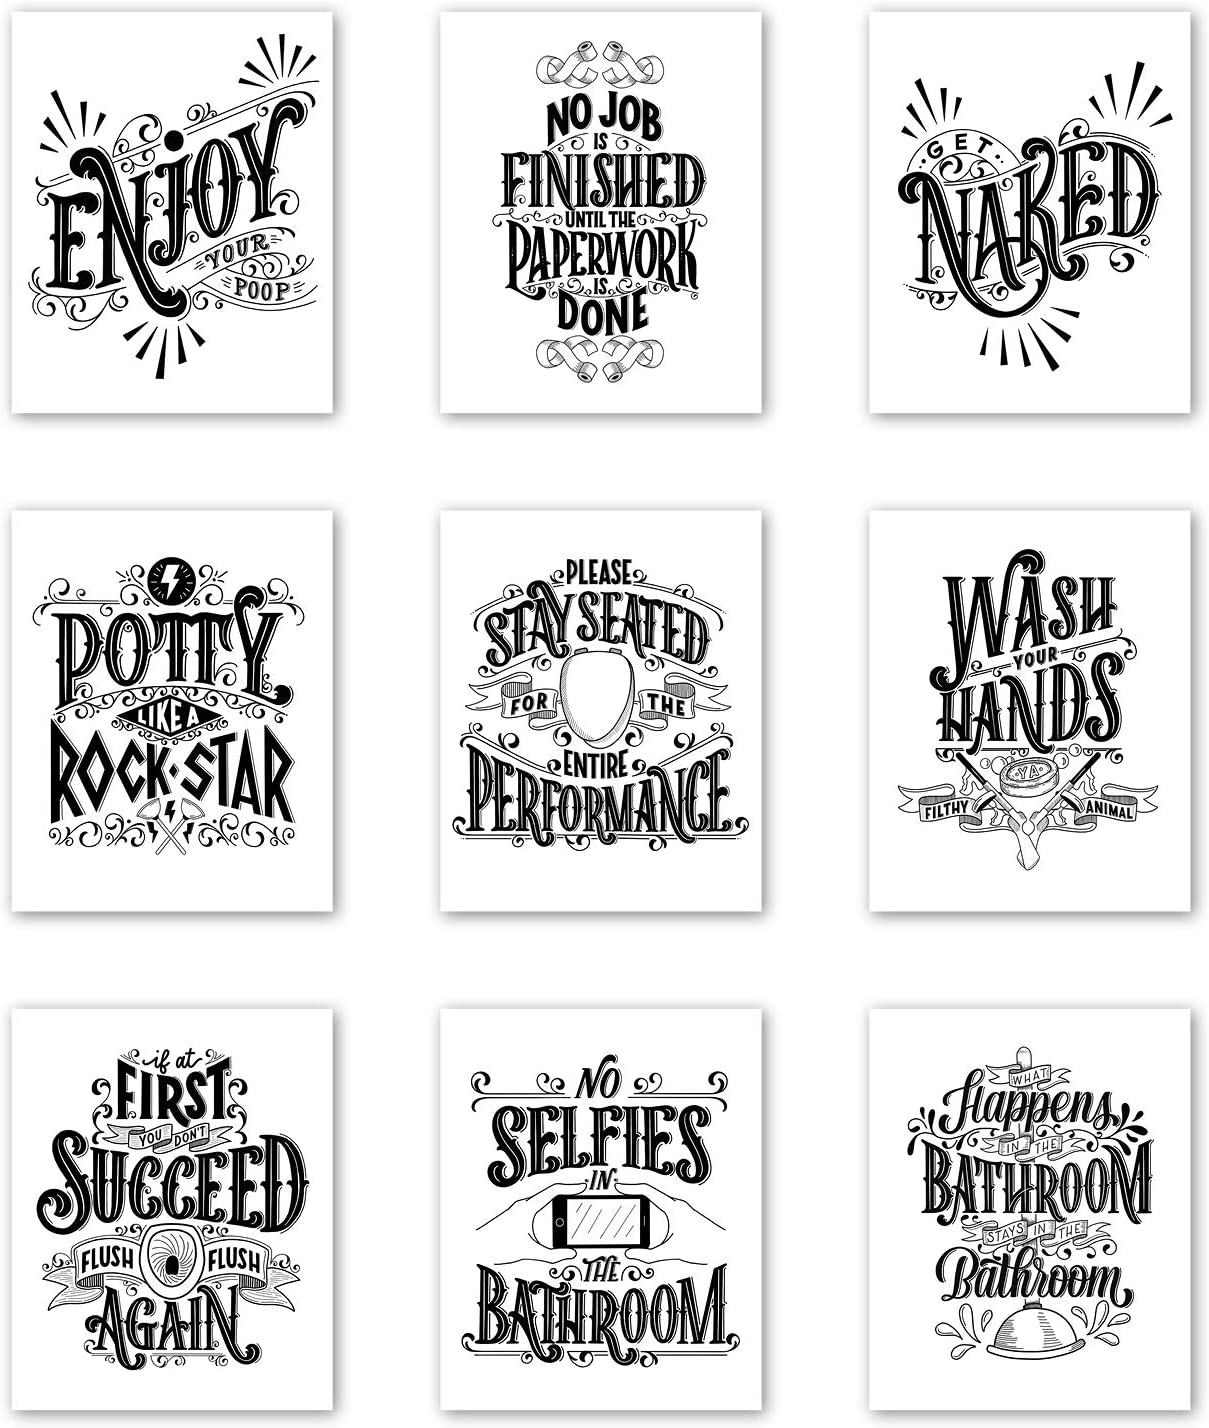 Palace Learning Funny Bathroom Decor - Set of 10 Bathroom Quotes and Sayings  - Double Sided - Wall Art Prints - Toilet Humor - Unframed (CARDSTOCK, 10 x